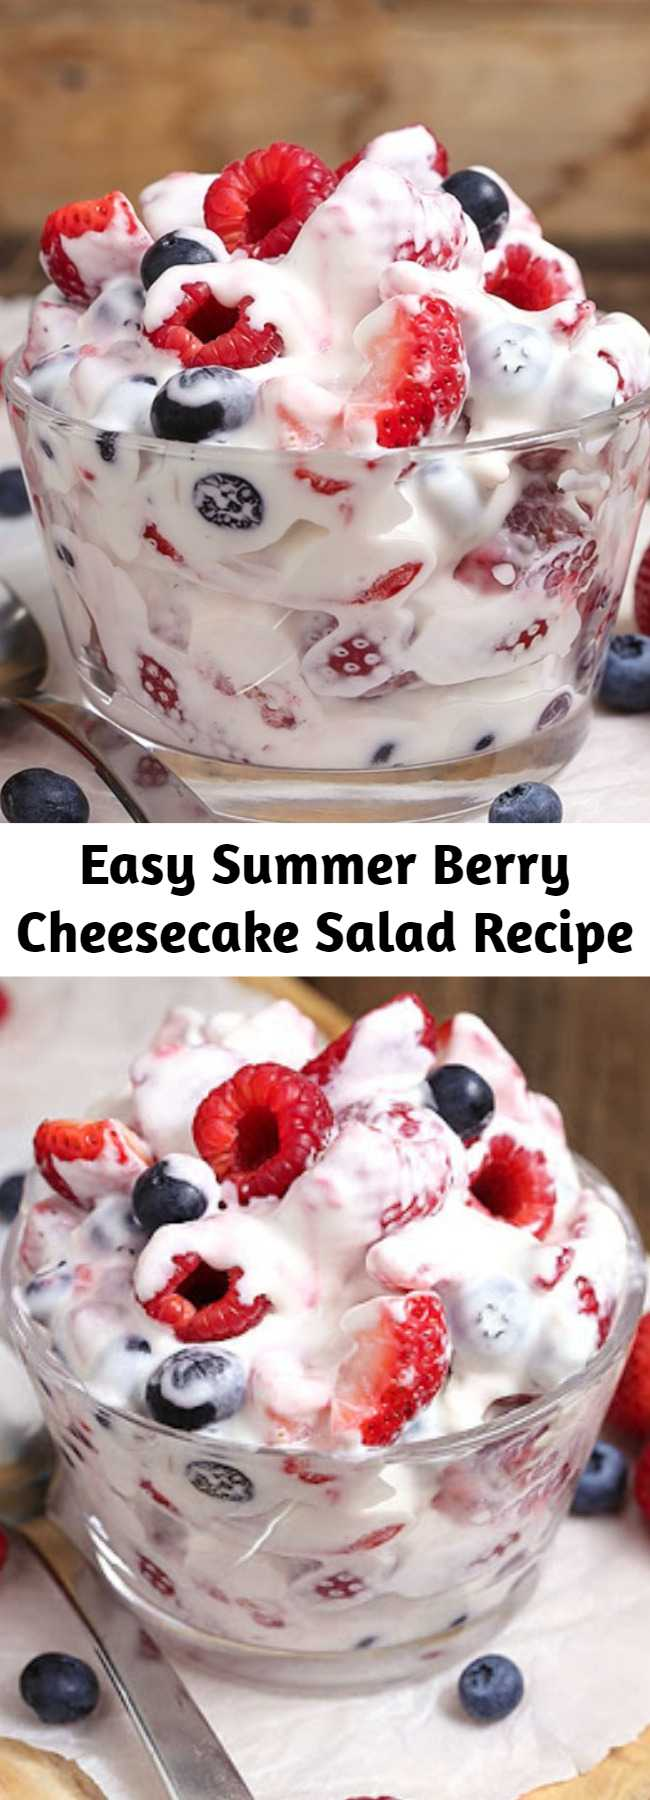 Easy Summer Berry Cheesecake Salad Recipe - This simple Summer Berry Cheesecake Salad recipe comes together with just 5 ingredients. Rich and creamy cheesecake filling is folded into your favorite berries to create the most amazing fruit salad ever! Your family will go nuts over it. #summer